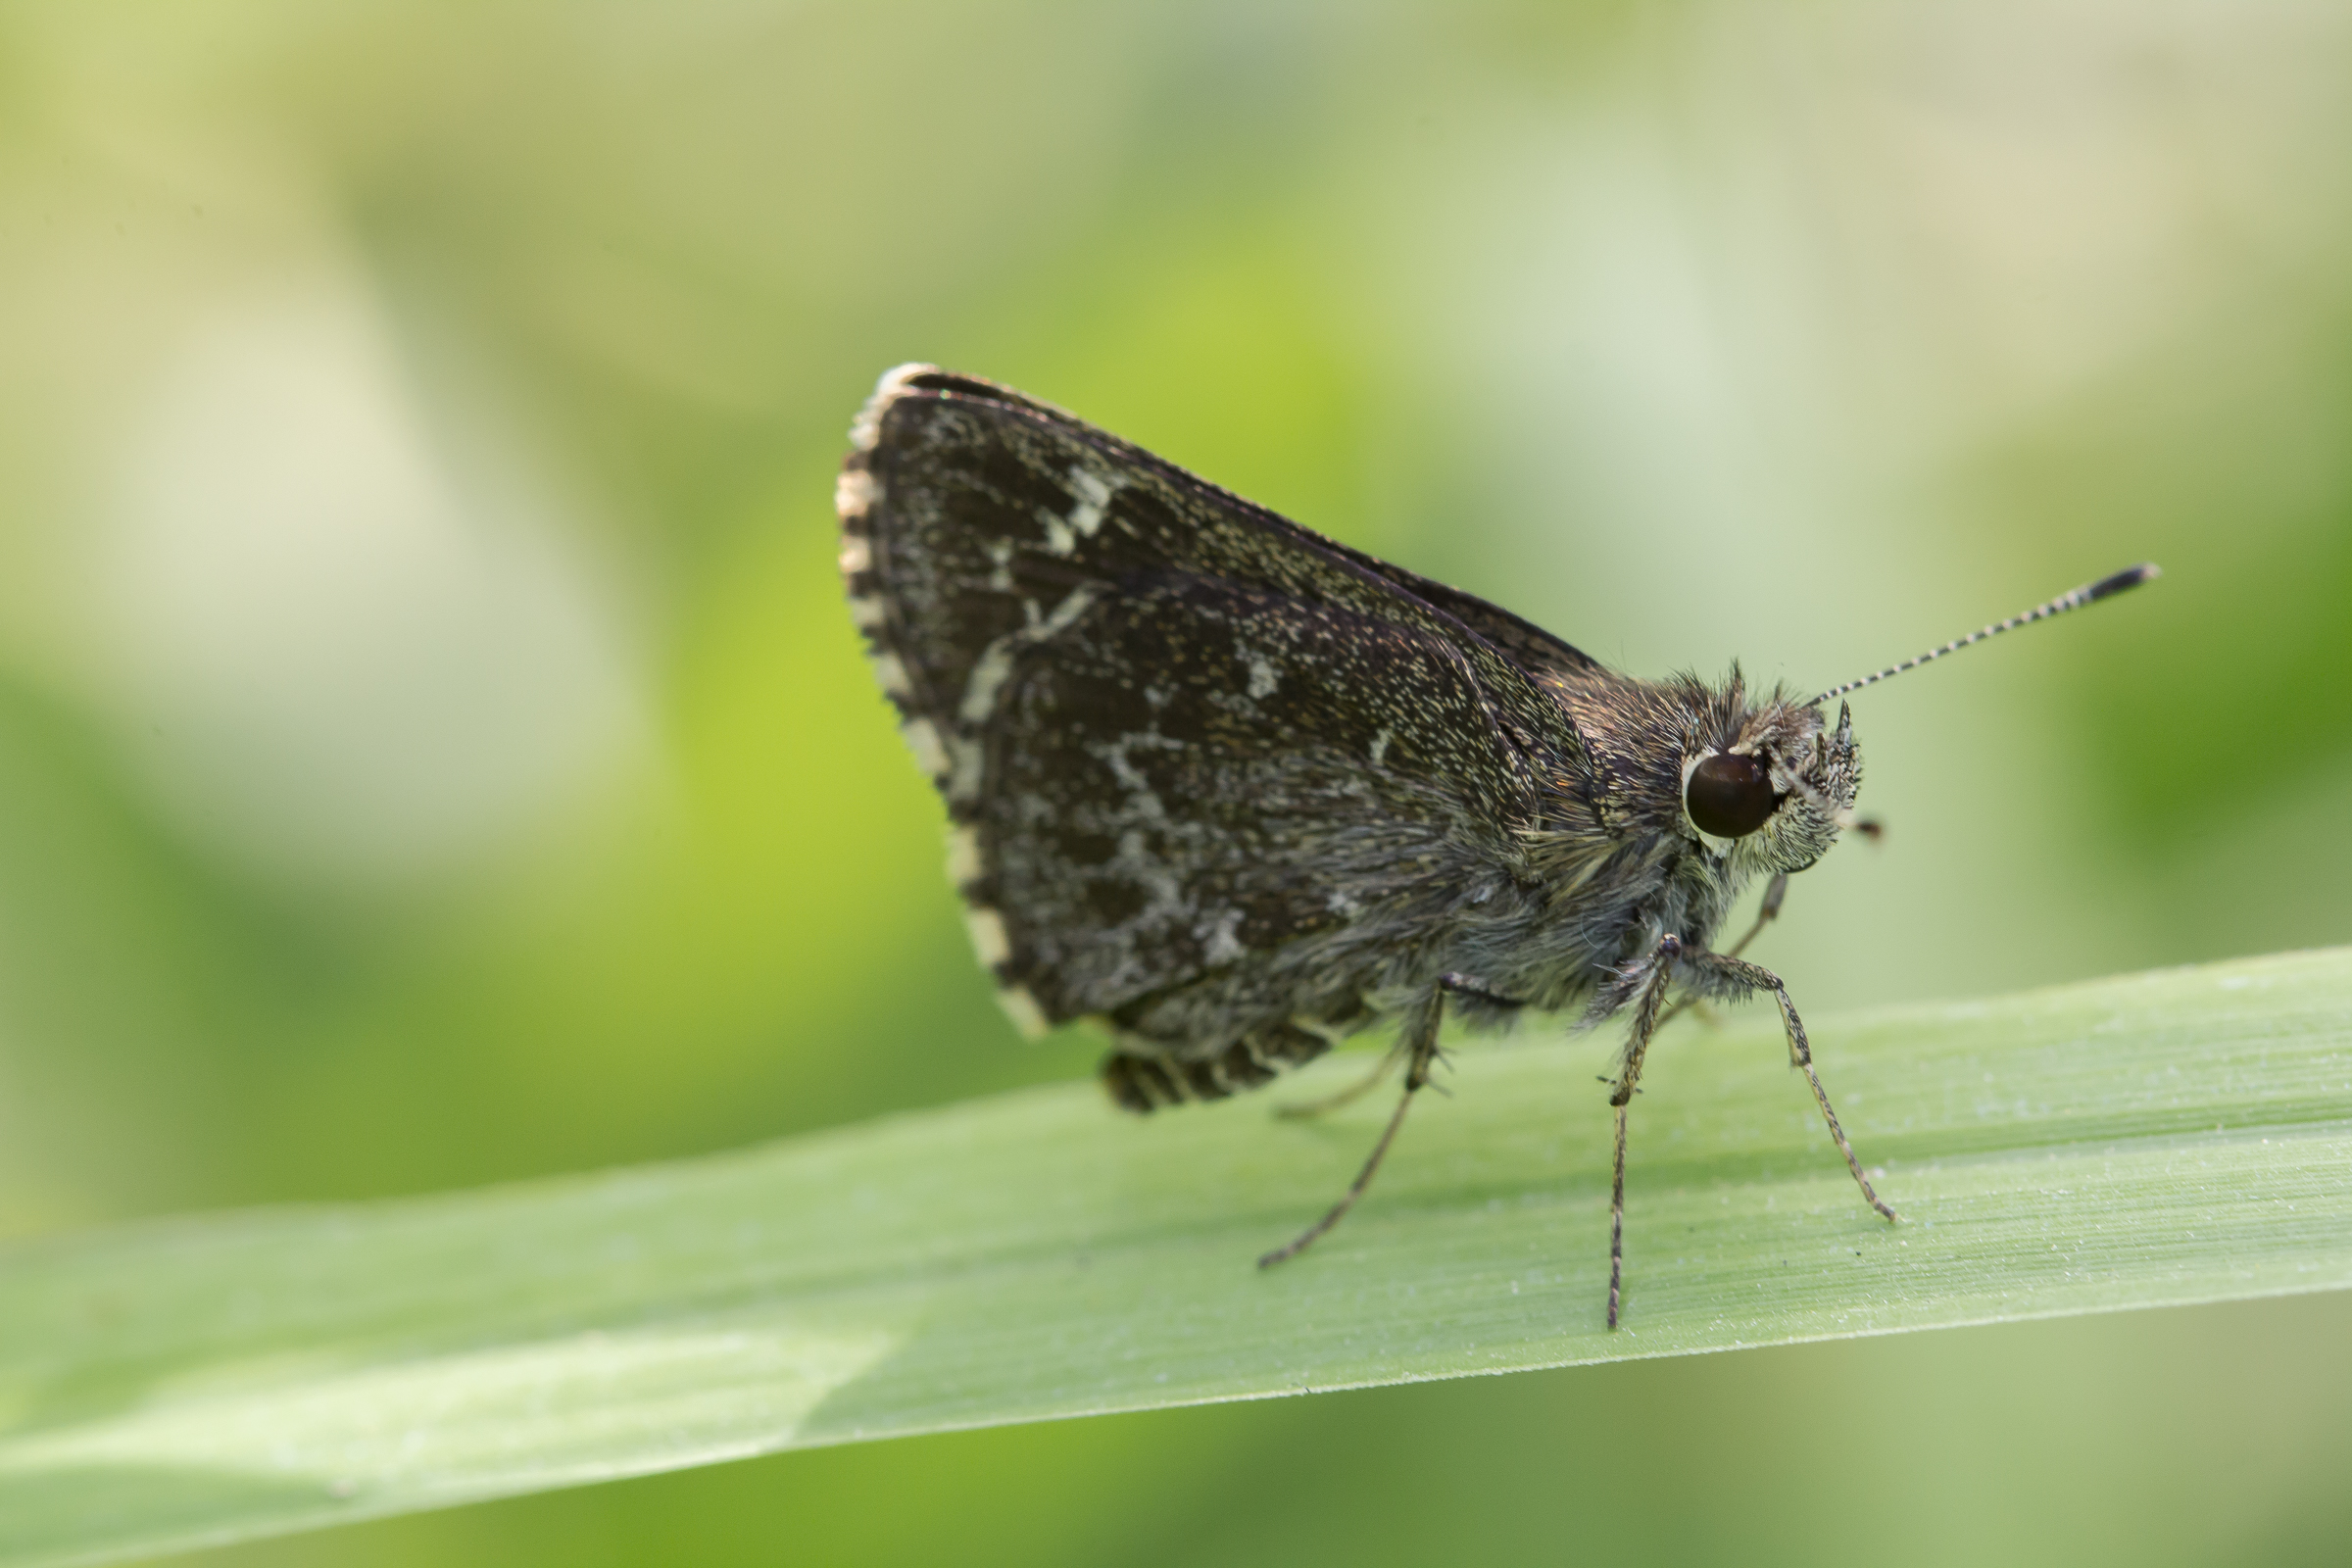 The Bell's Roadside-Skipper has beautiful salt and pepper speckling.